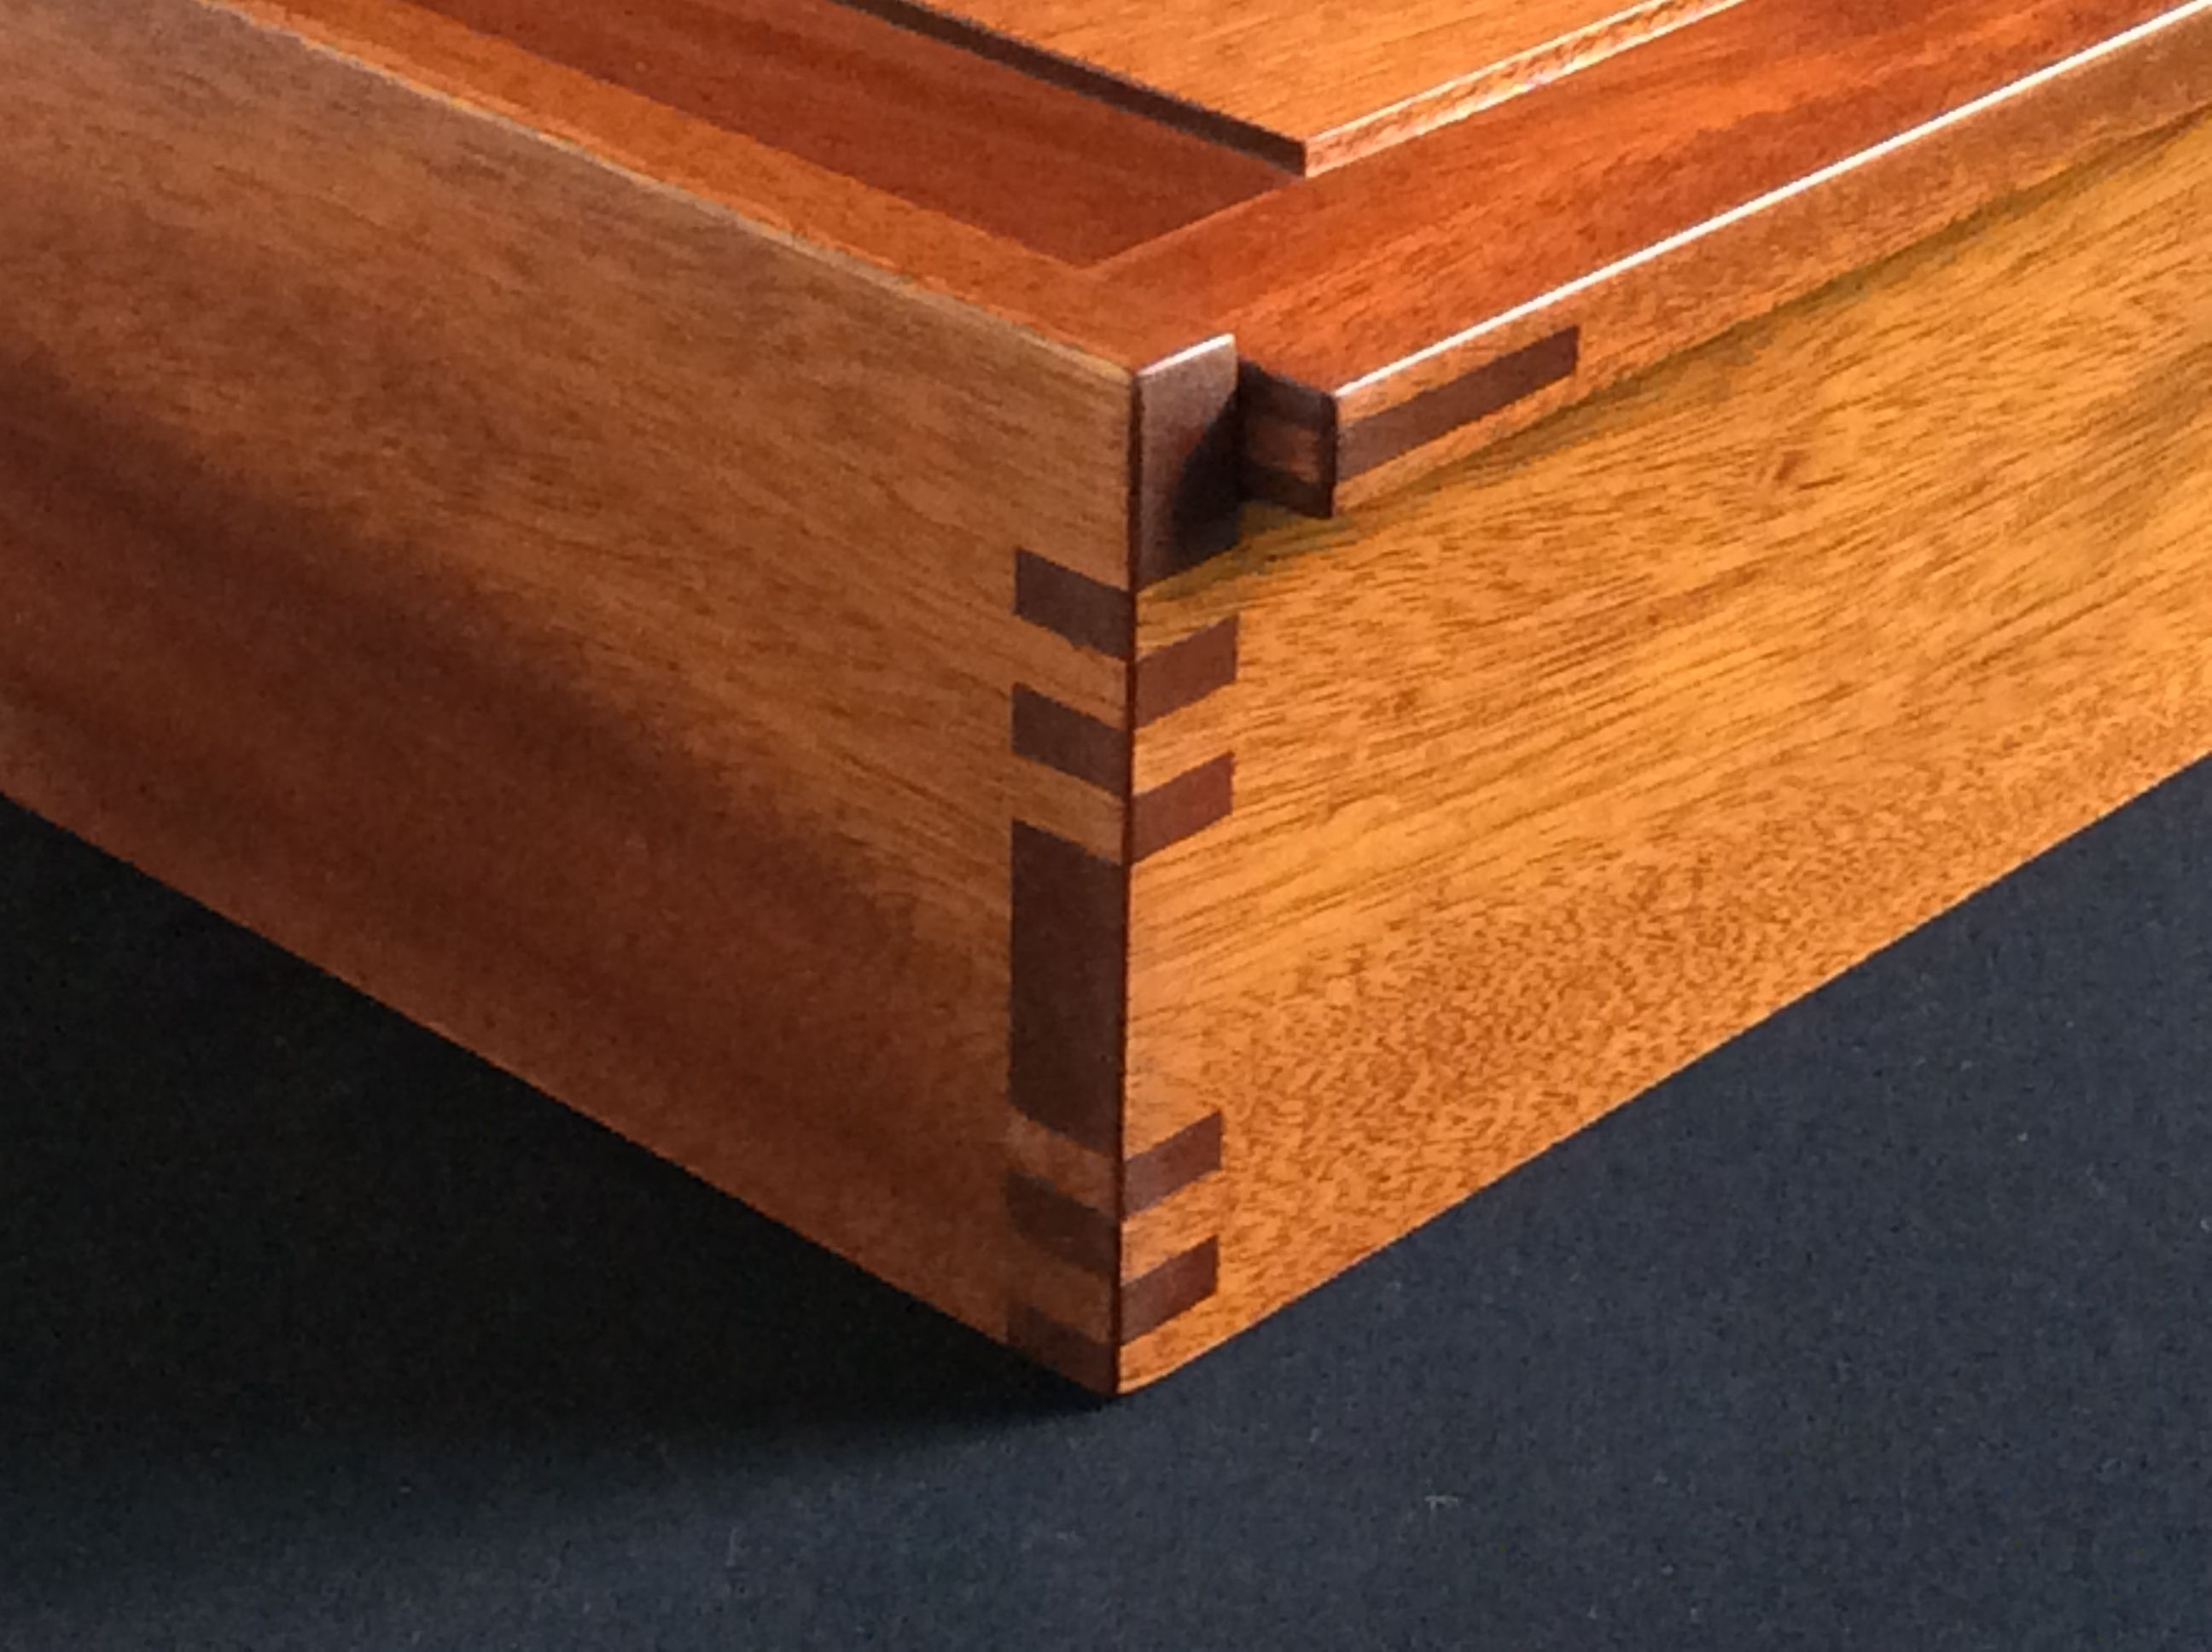 buy a custom small wood jewelry box made to order from david klenk. Black Bedroom Furniture Sets. Home Design Ideas